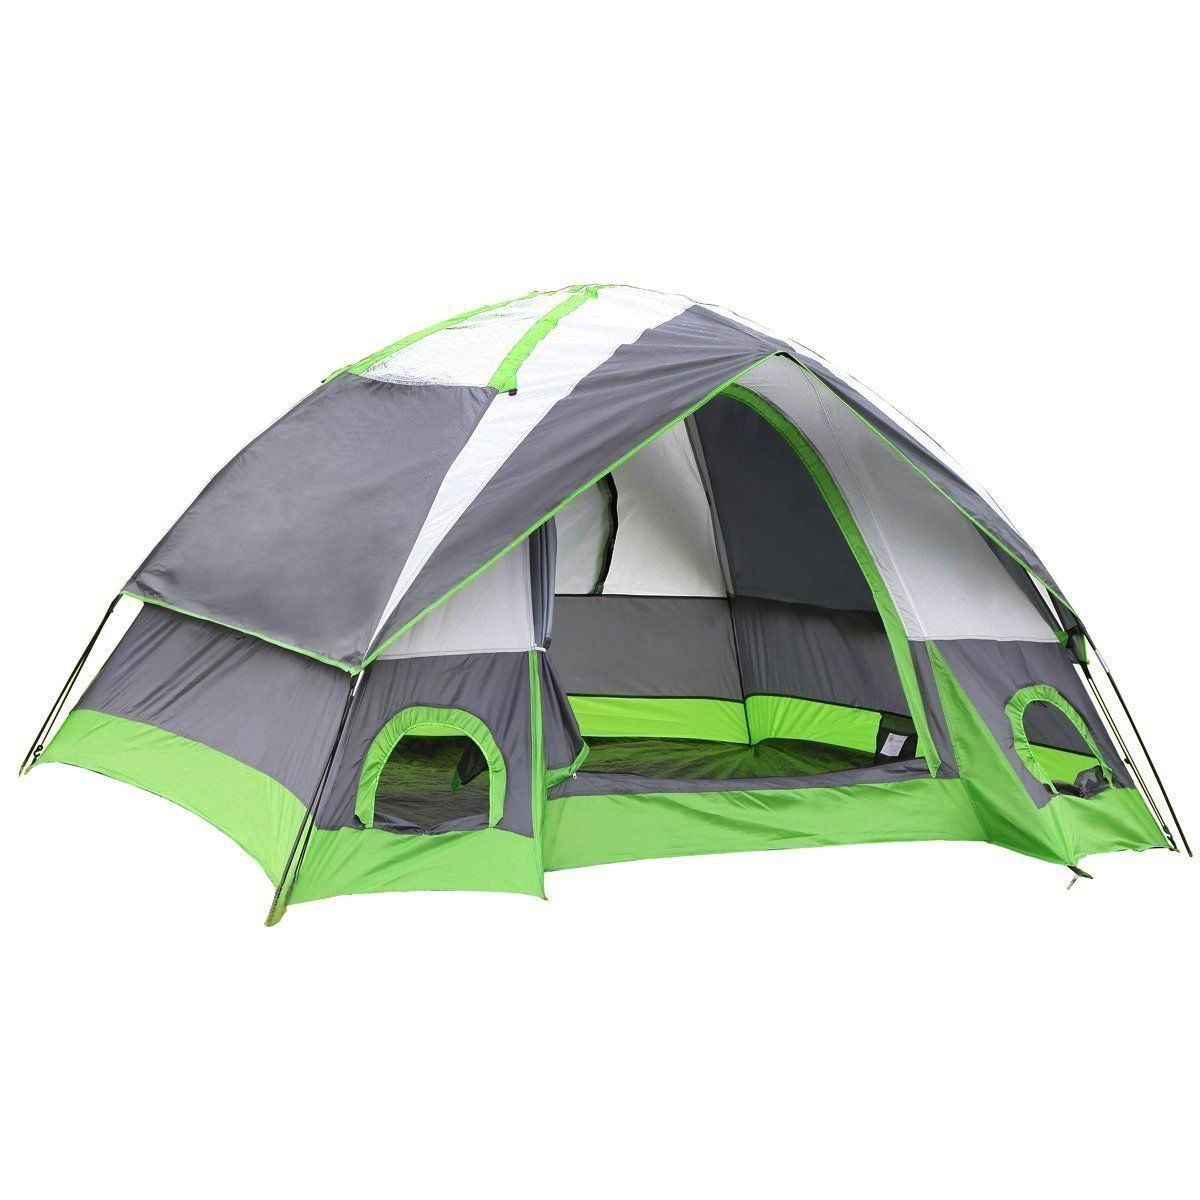 Tent Pop Up Tents For Sale Camping Coleman Gear Equipment Stove Store Canvas